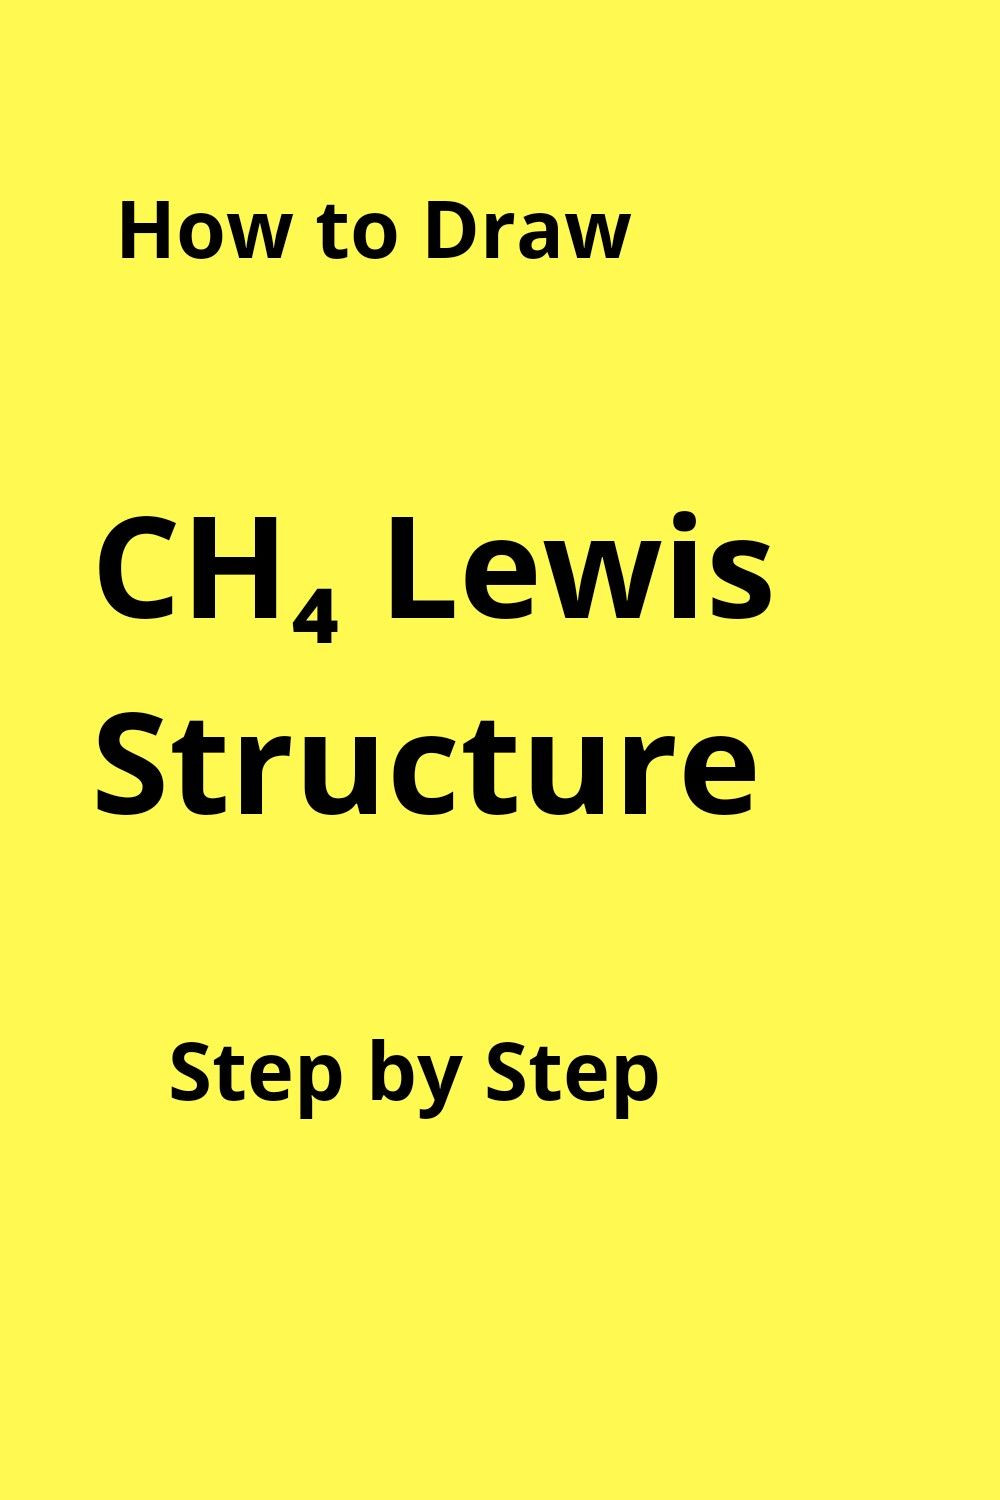 Lewis Structure Practice Worksheet 4 Steps】ch4 Lewis Structure In 2020